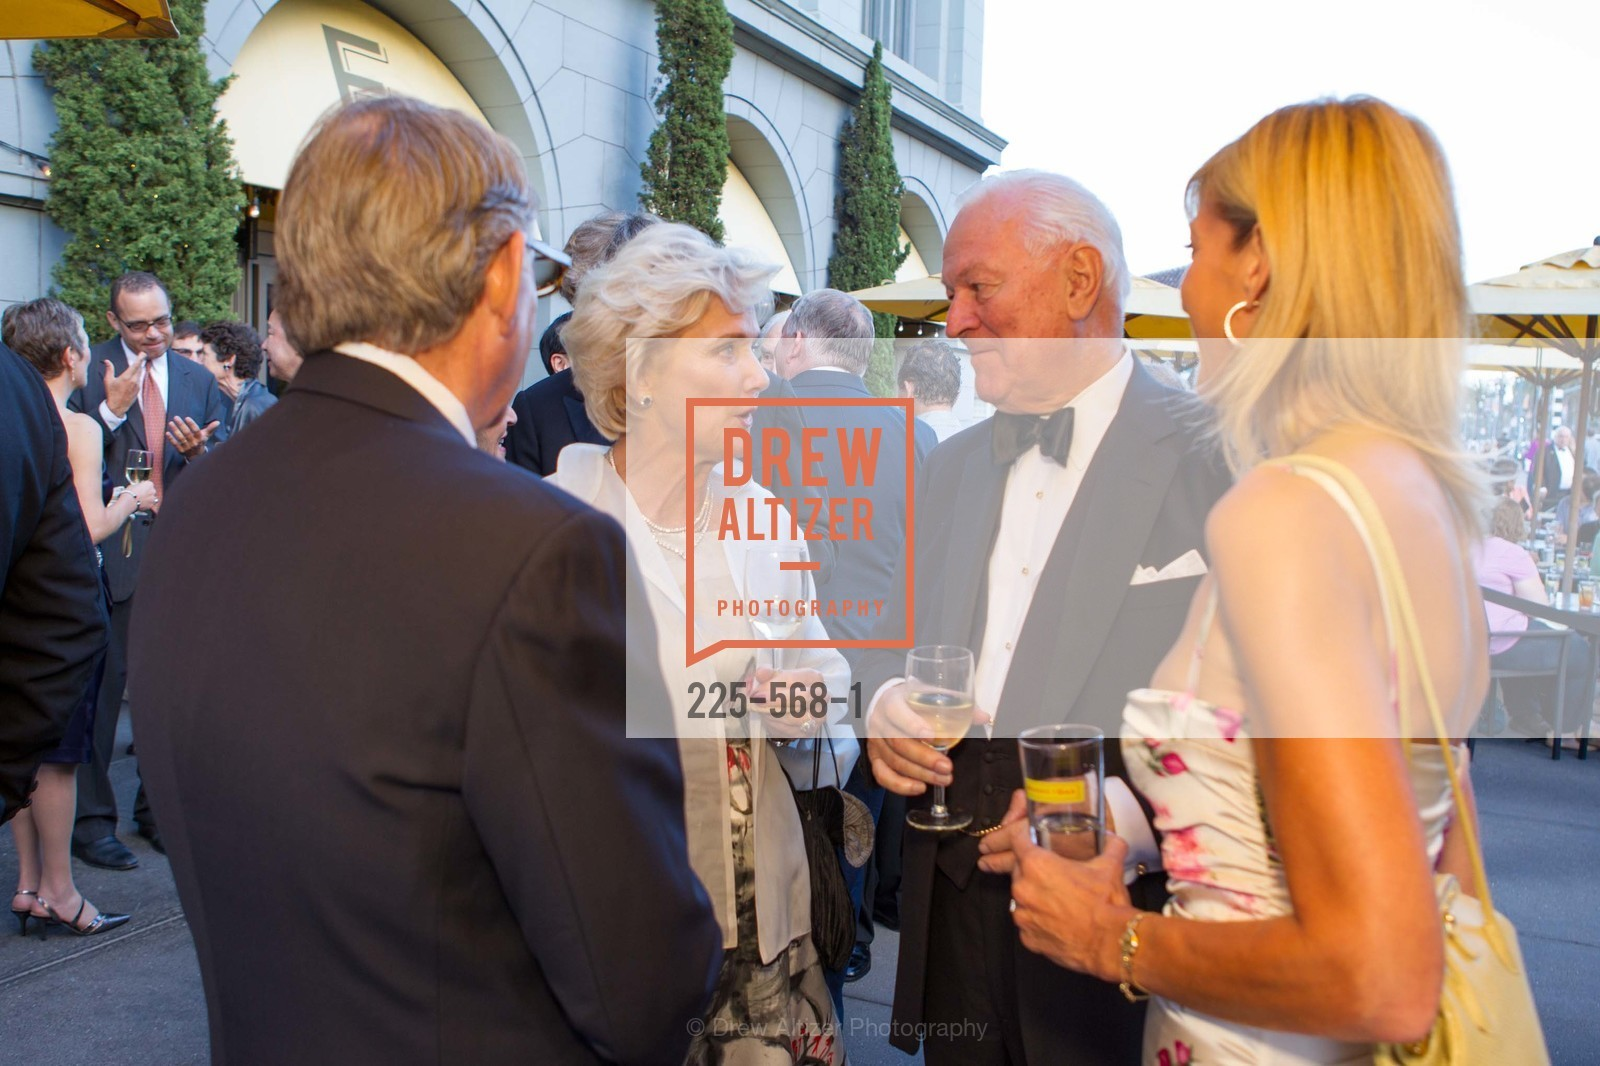 Judy Wilbur, Dick Otter, SOTHEBY'S  Hosts a Private Viewing of Highlights from the Collection of MRS. PAUL MELLON, US, September 17th, 2014,Drew Altizer, Drew Altizer Photography, full-service agency, private events, San Francisco photographer, photographer california